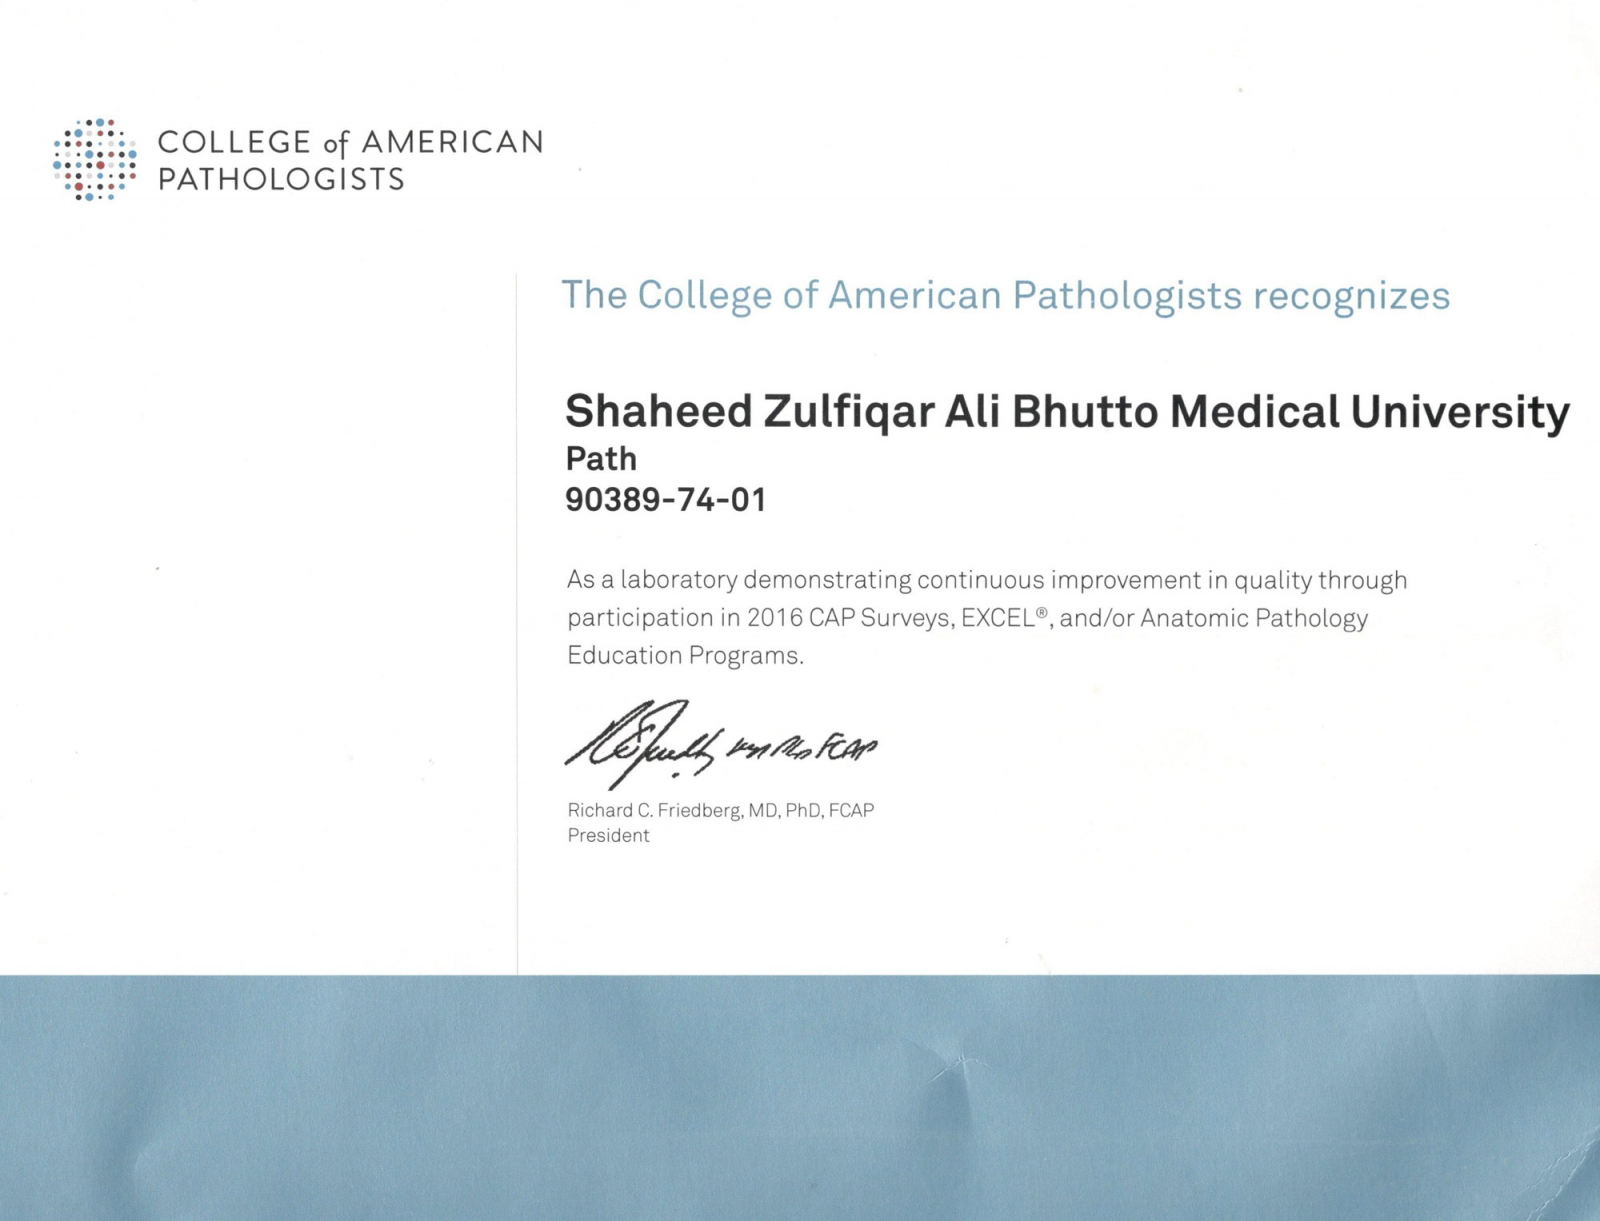 Congratulations on achieving recognition from The College of American Pathologists